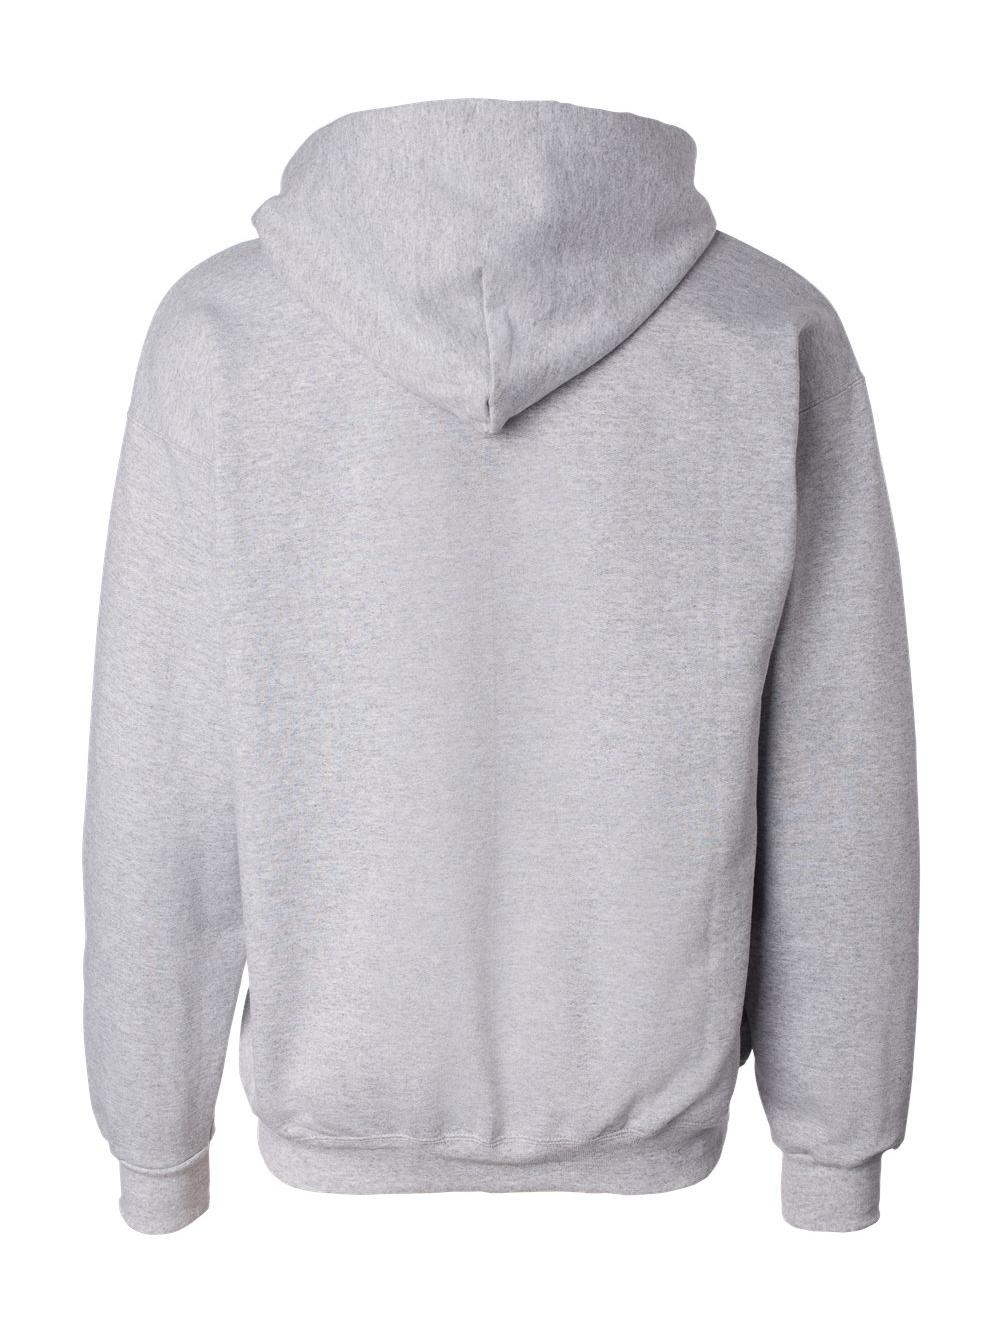 Hanes-Ultimate-Cotton-Full-Zip-Hooded-Sweatshirt-F280 thumbnail 13